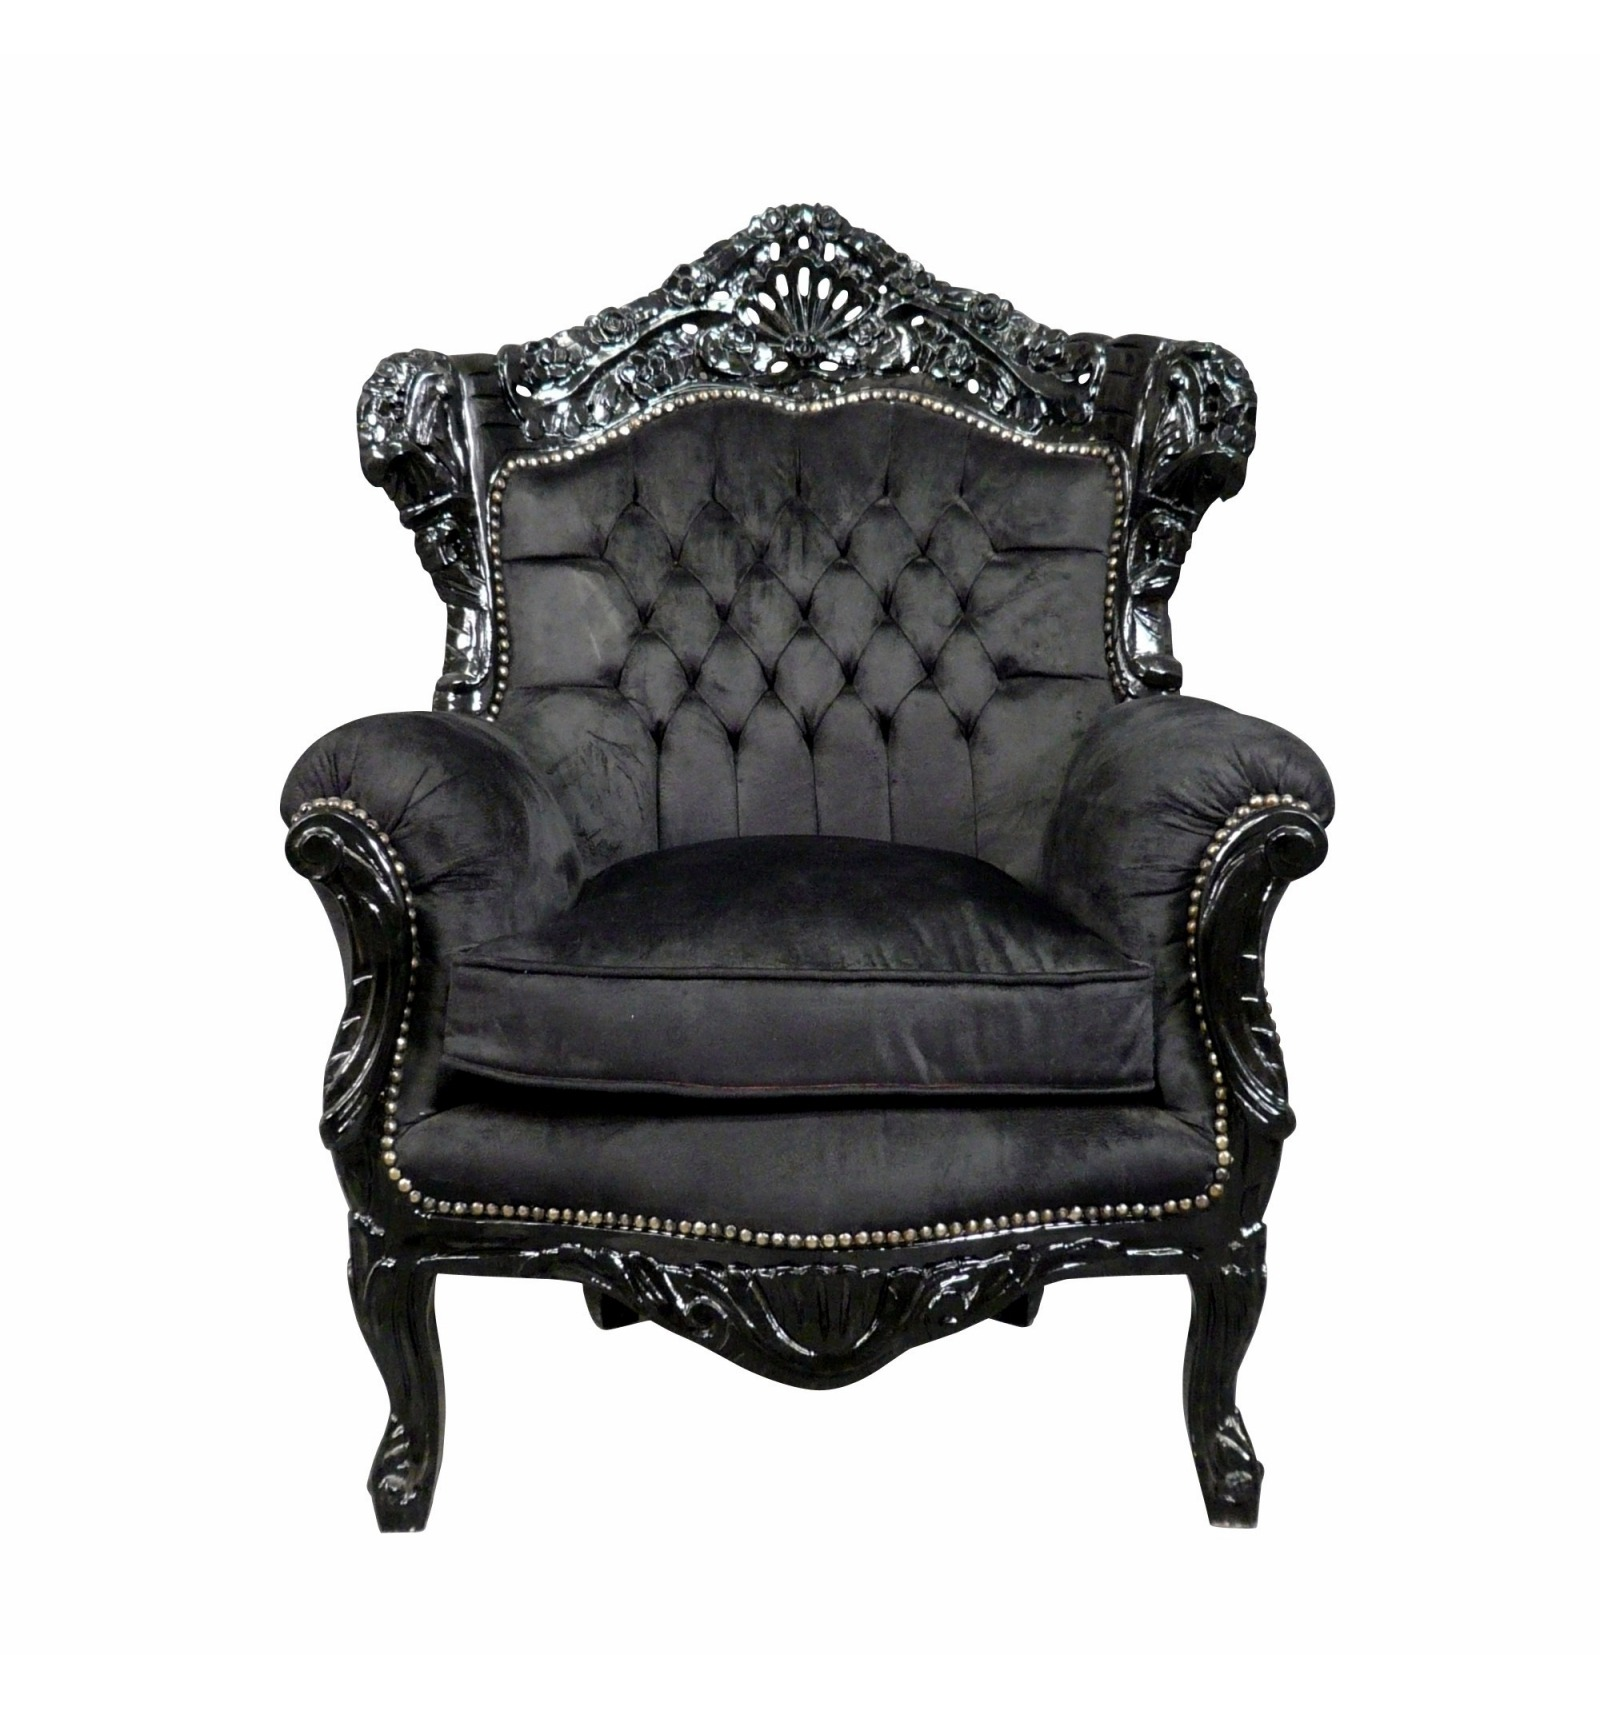 fauteuil baroque en velours et bois noir. Black Bedroom Furniture Sets. Home Design Ideas